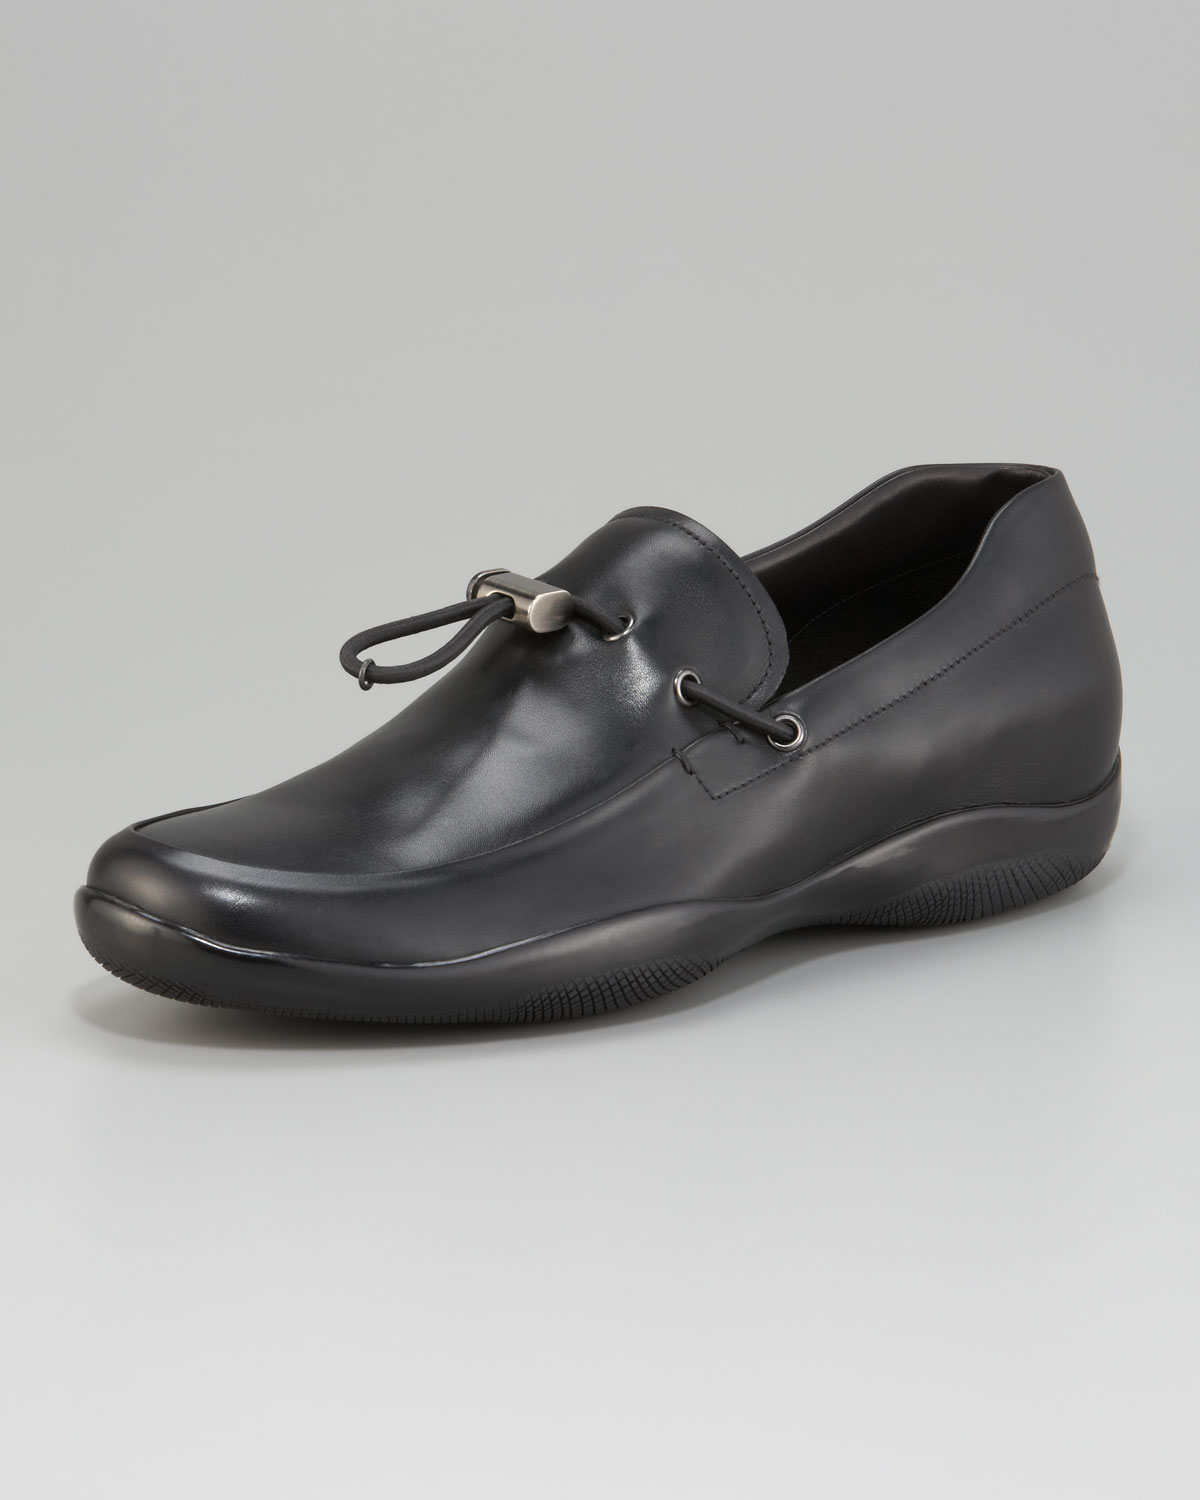 485df449 where can i buy prada loafers c926c 3d809